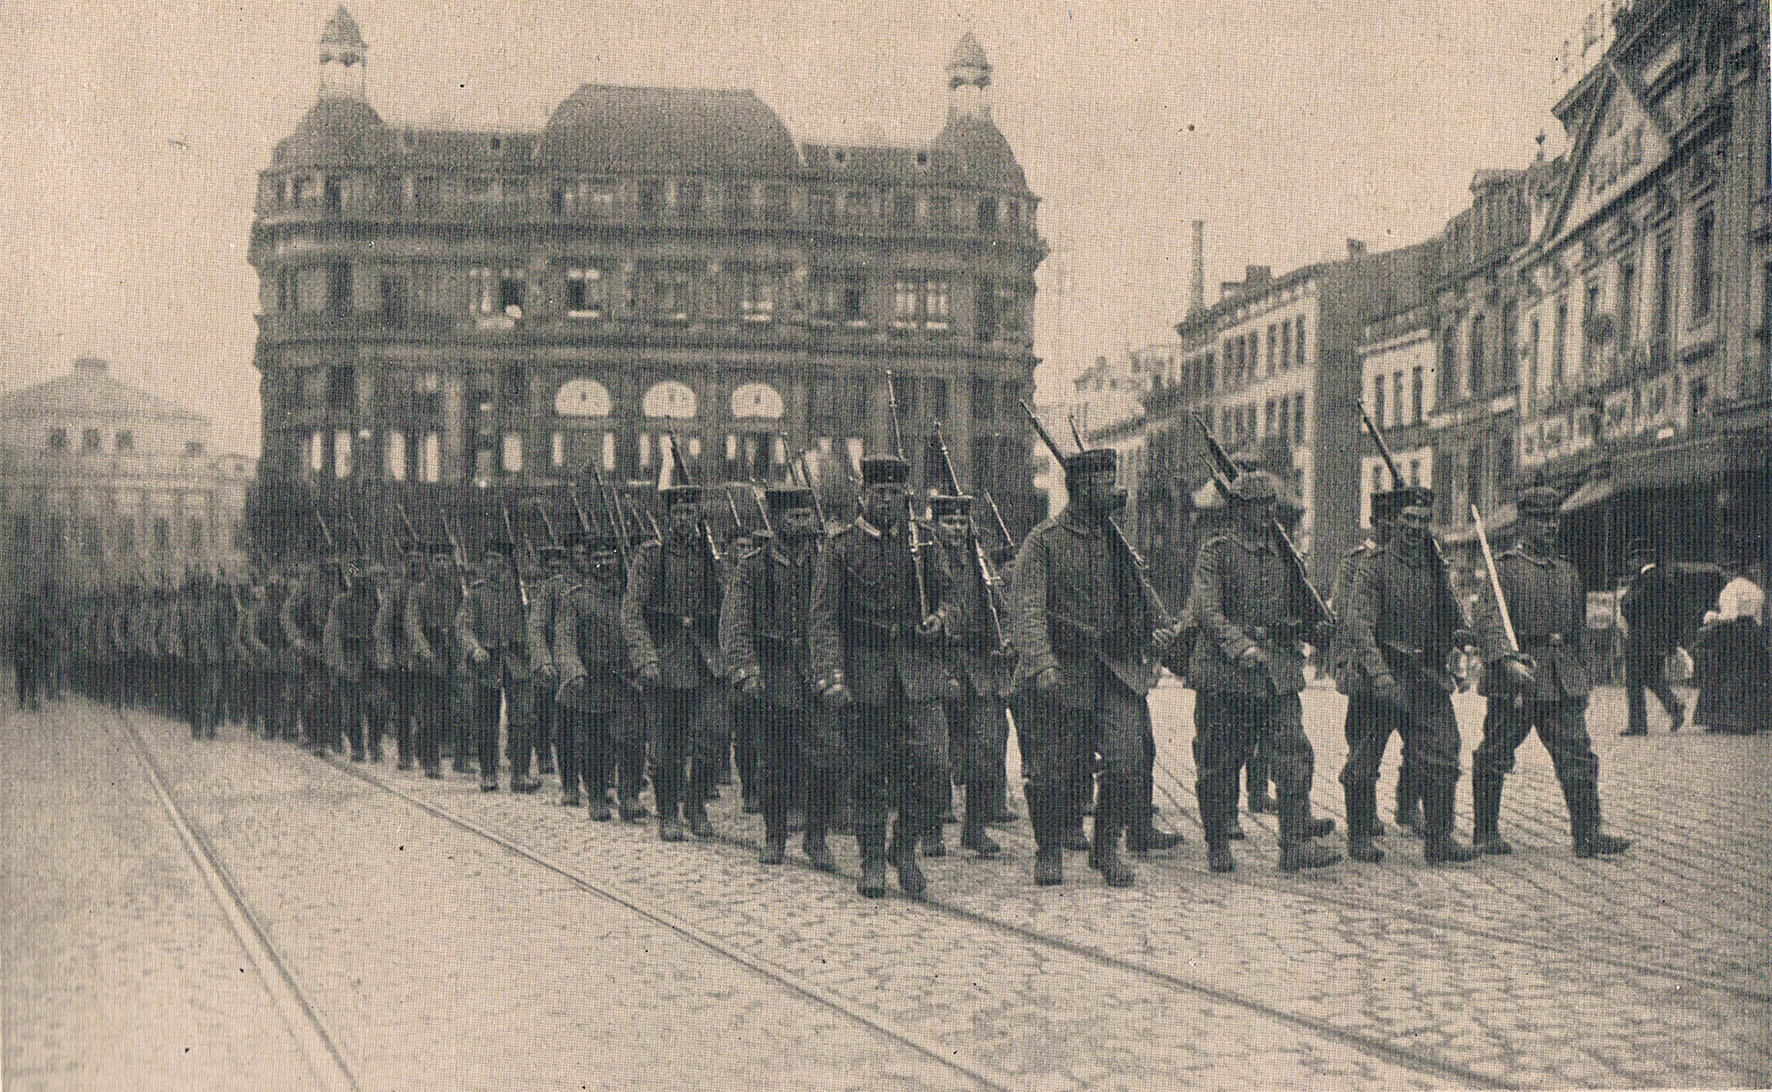 15. august 1914. Regiment 86 marcherer fra Liege